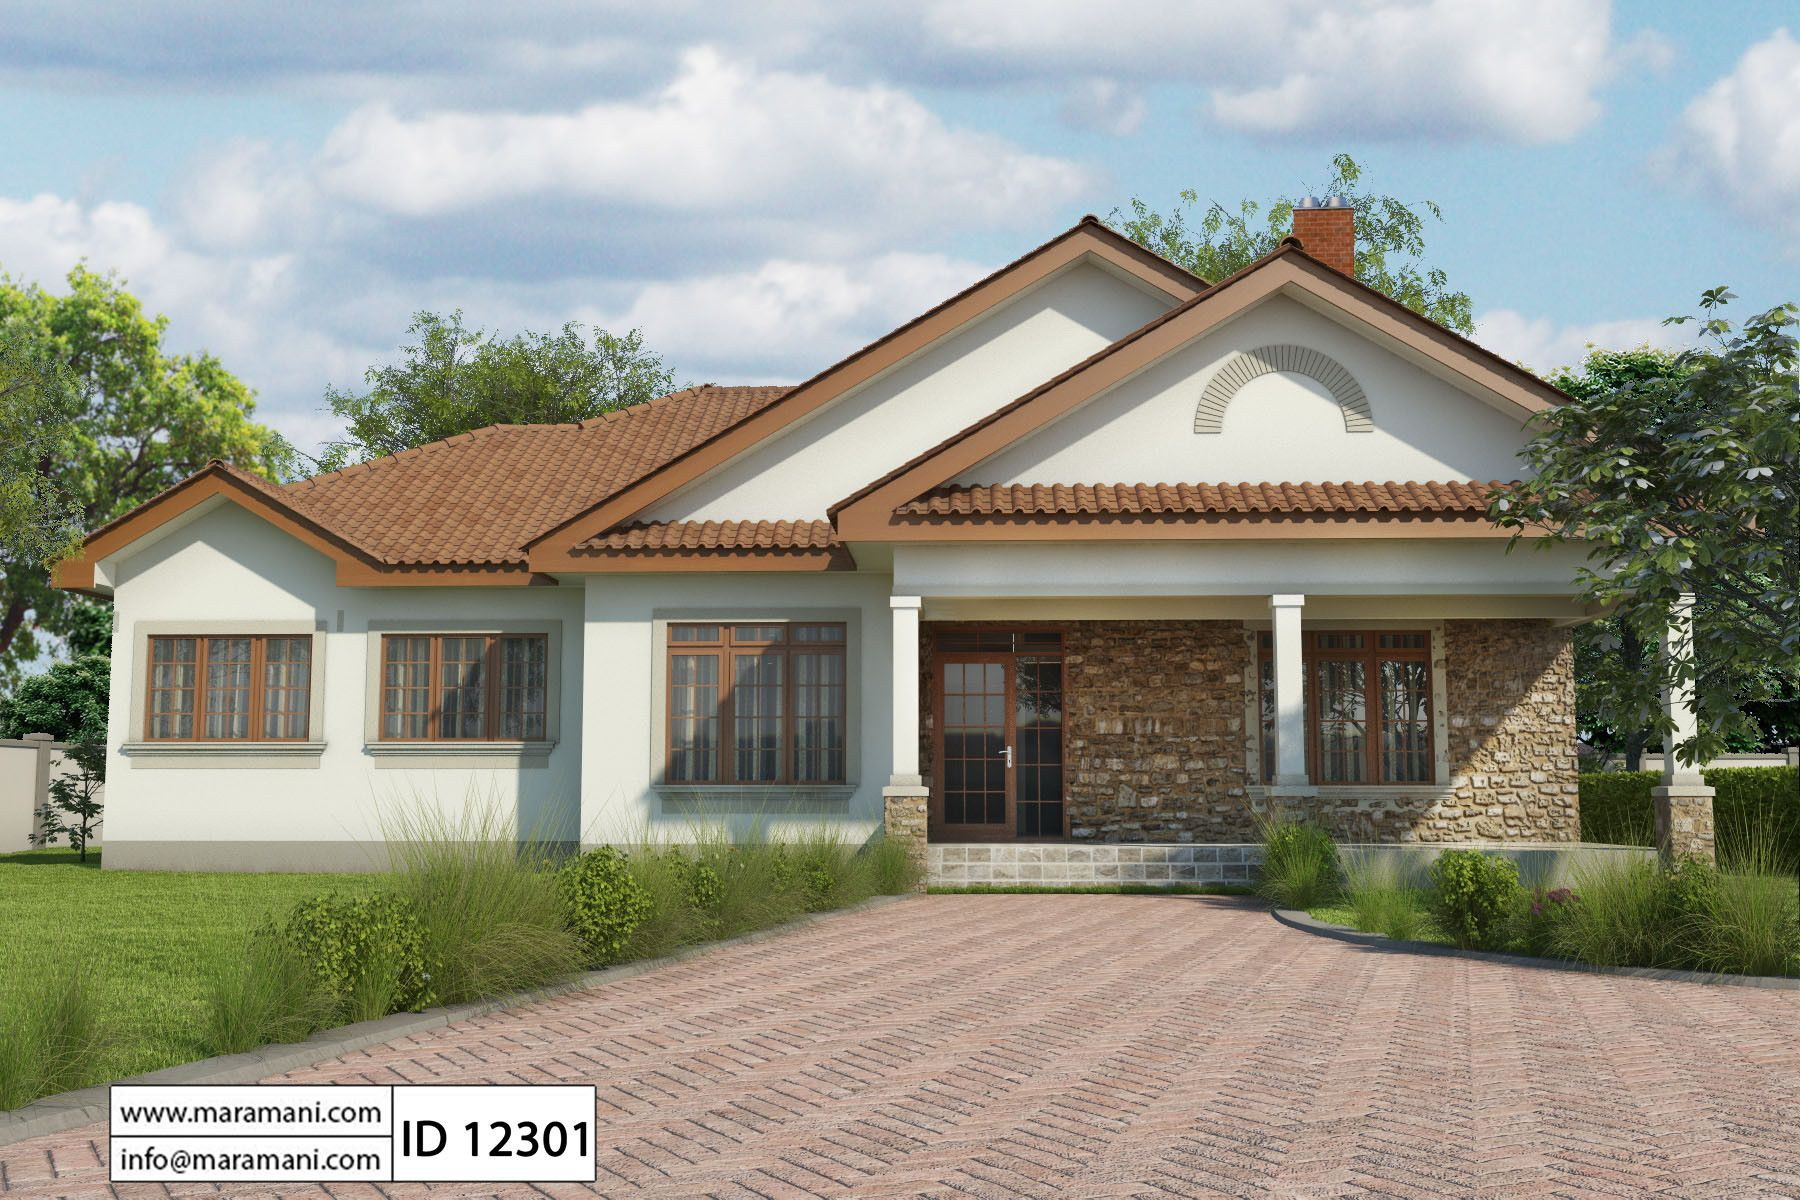 Simple 2 bedroom house plan id 13402 house designs by for New build 2 bedroom house